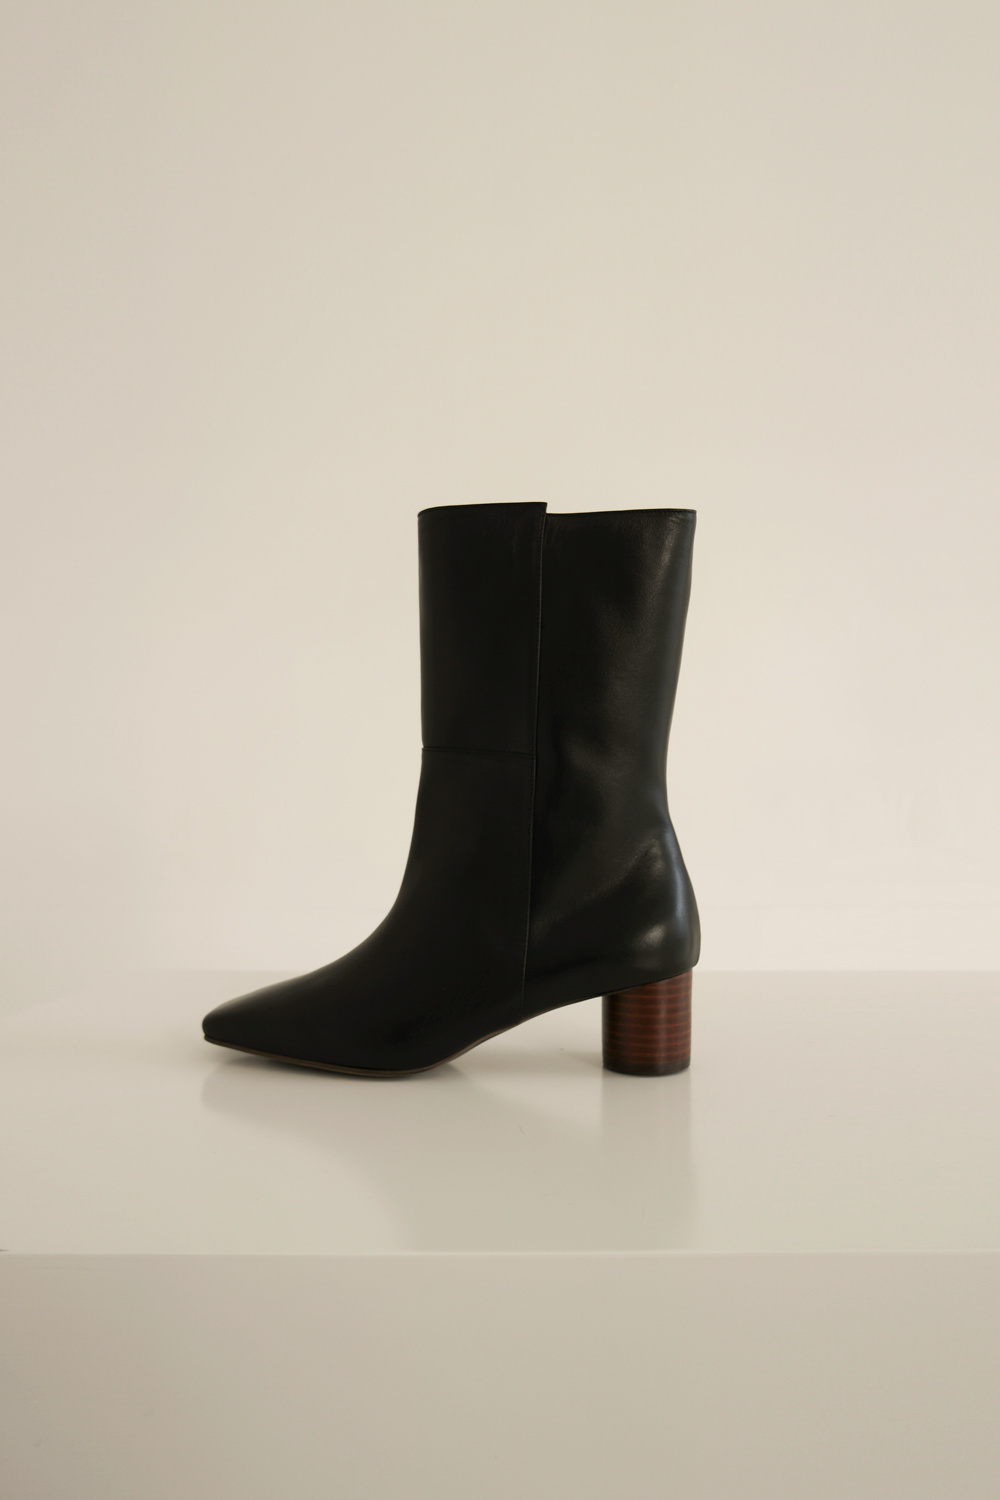 anthese ruben short boots, black (5%)